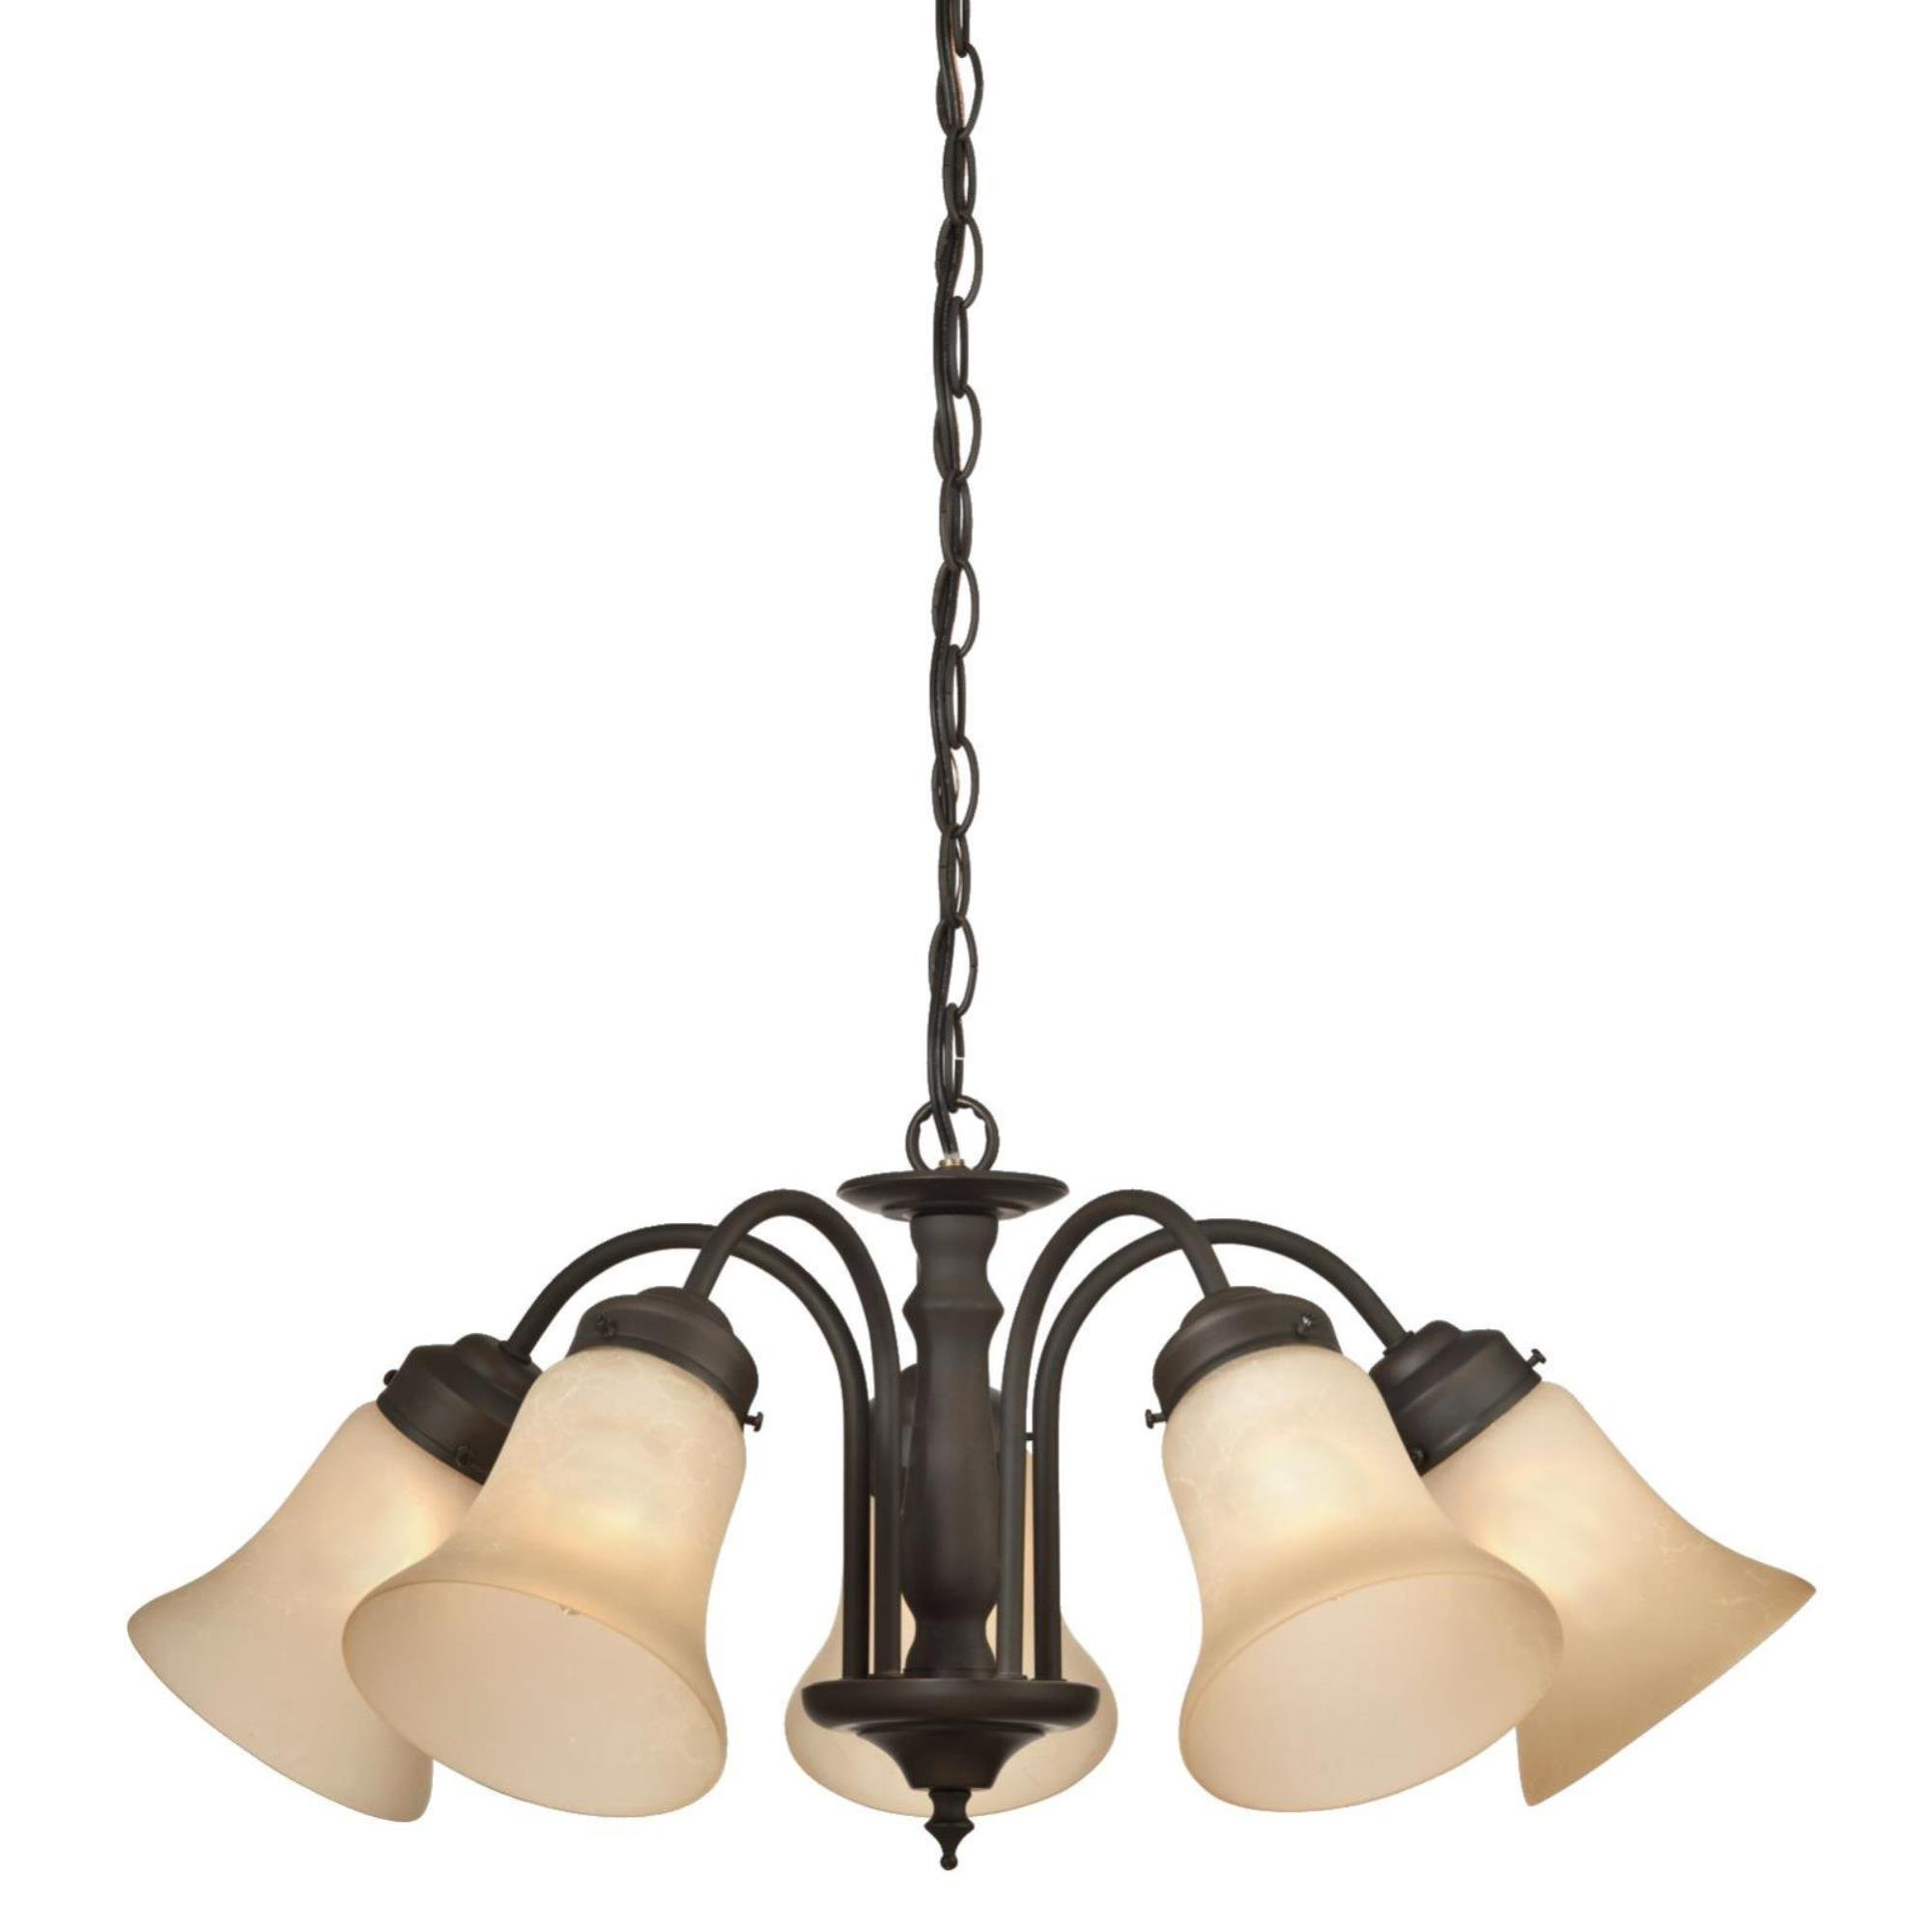 Westinghouse 6223500 Trinity II Five-Light Interior Chandelier, Oil Rubbed Bronze Finish with Aged Alabaster Glass